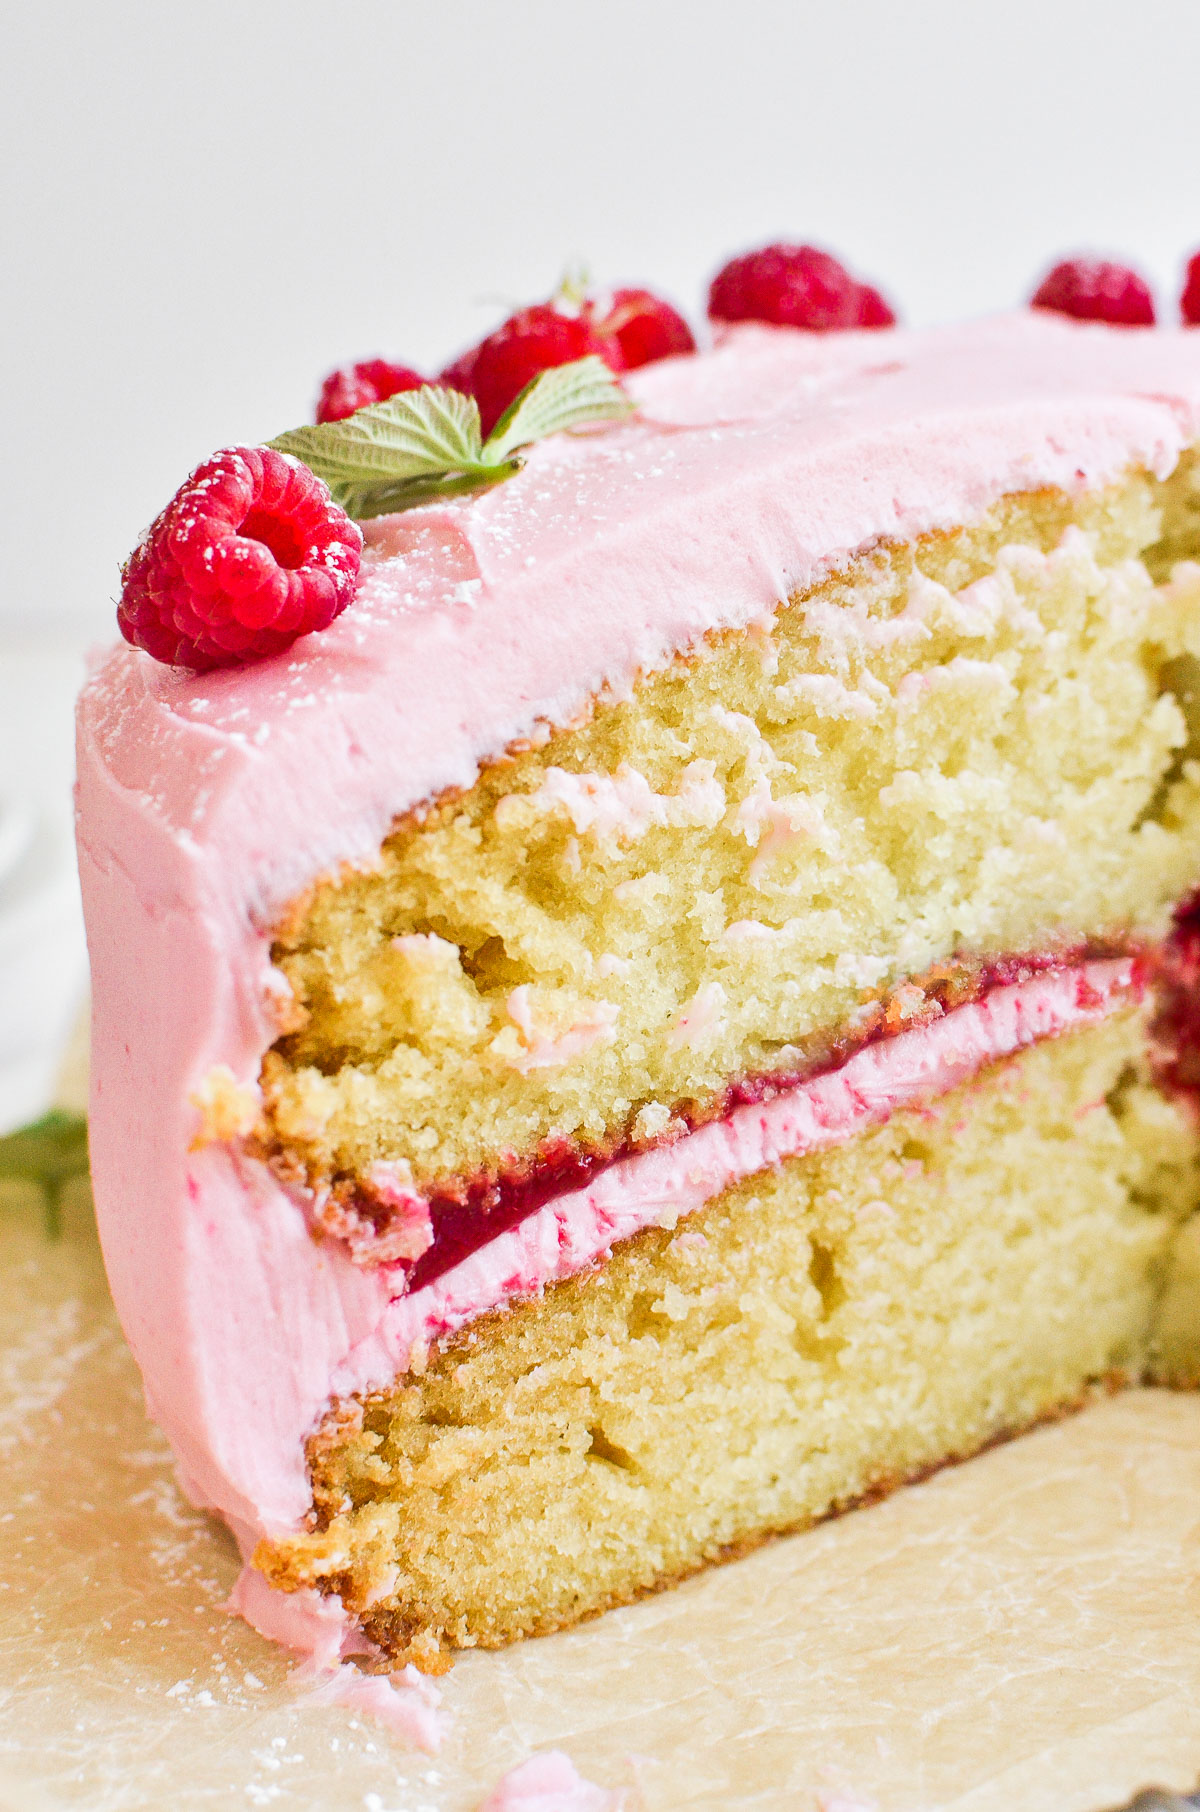 Vanilla cake with raspberry buttercream frosting